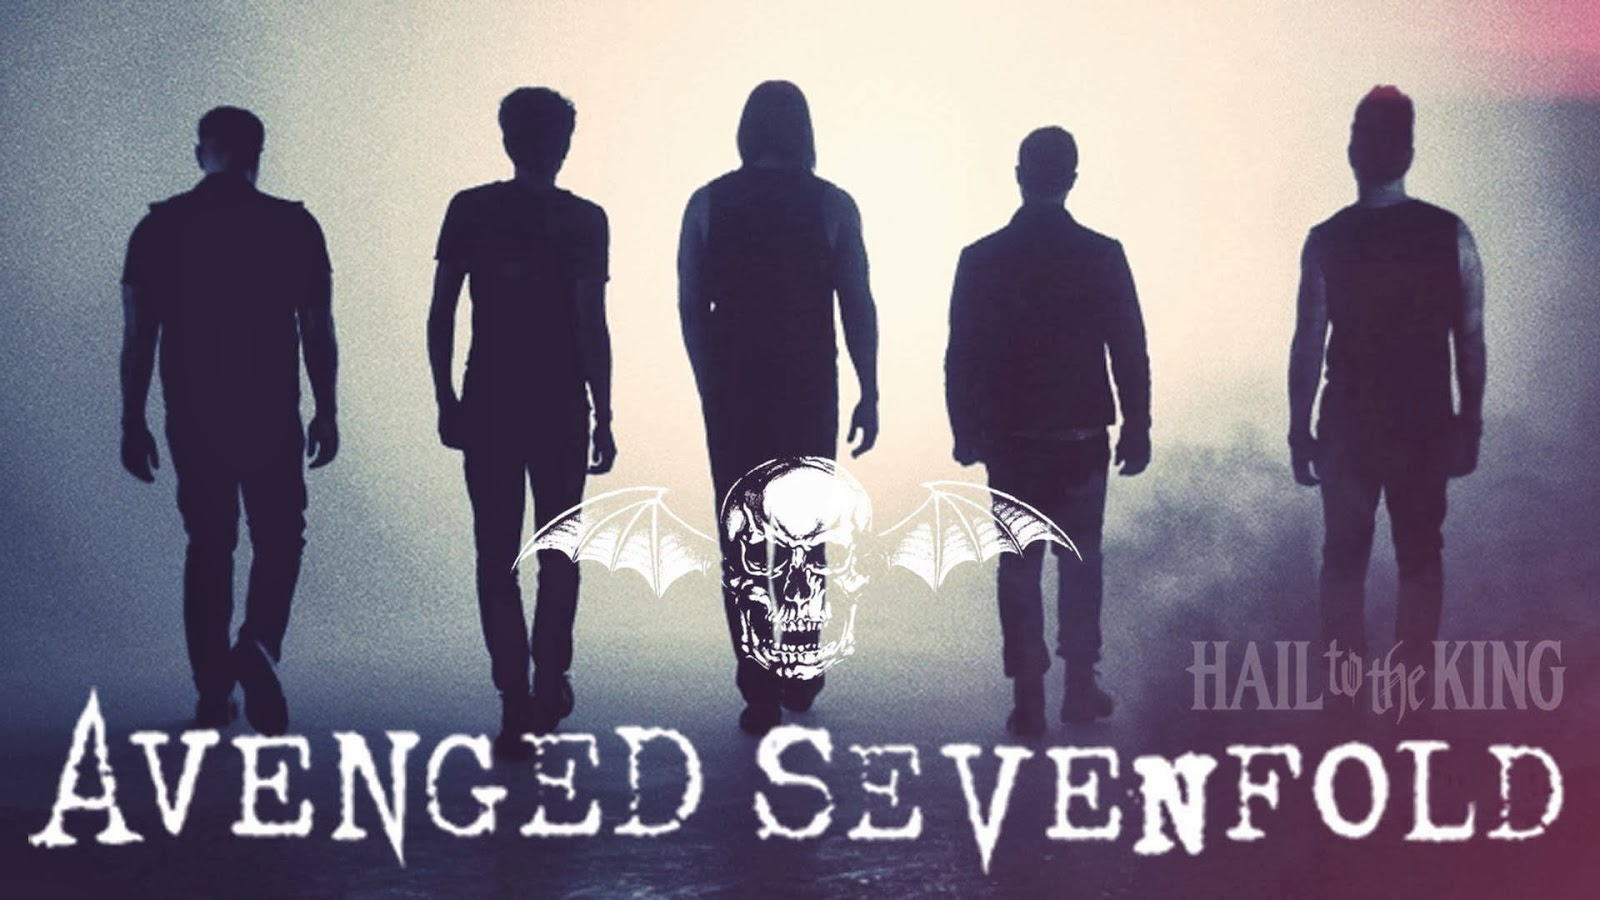 Download avenged sevenfold album cover wallpaper click image to